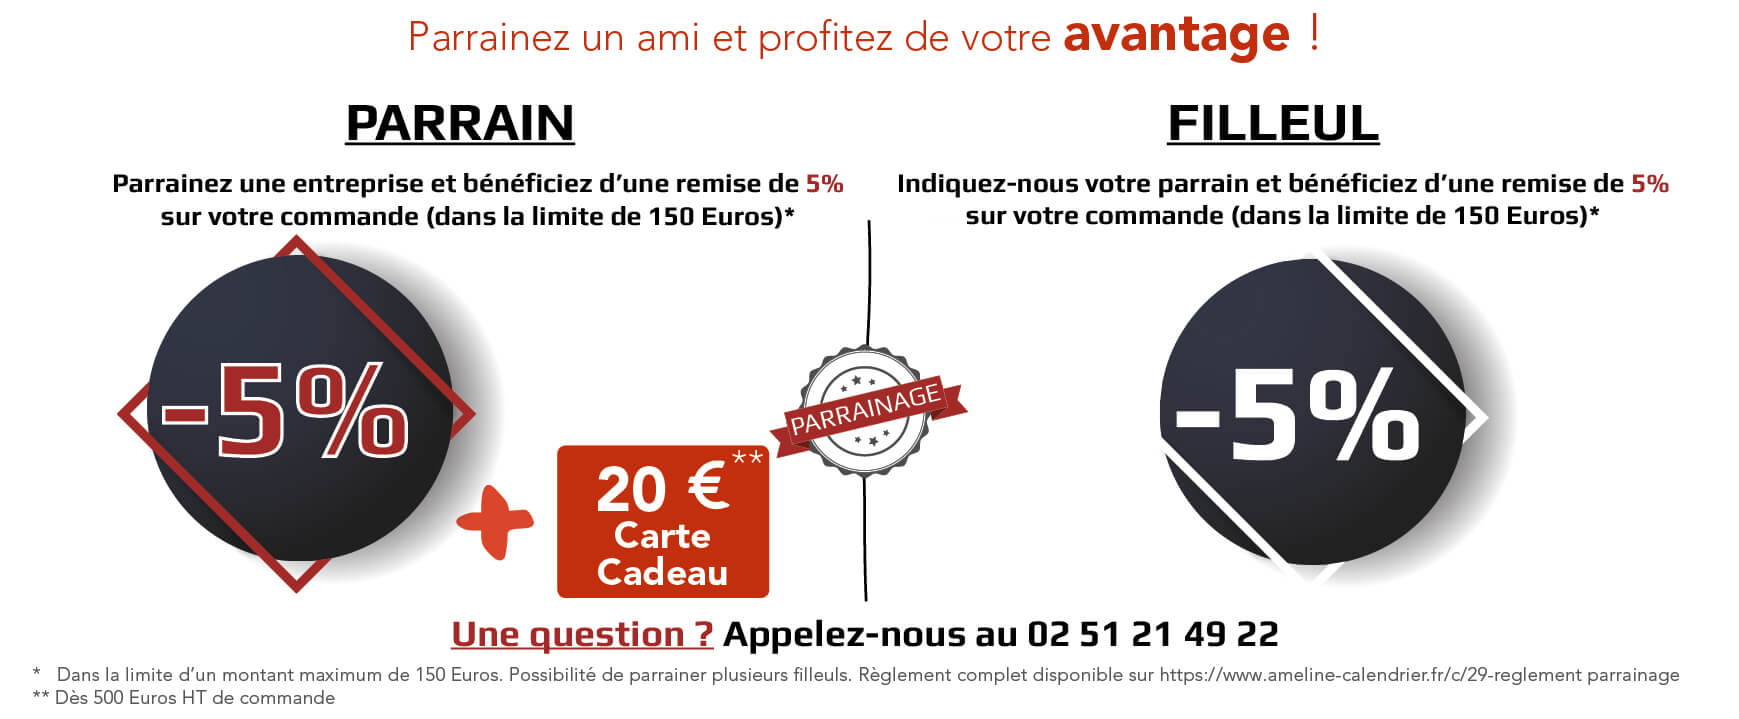 Ameline Calendrier.Offres Speciales Promotions Ameline Calendrier